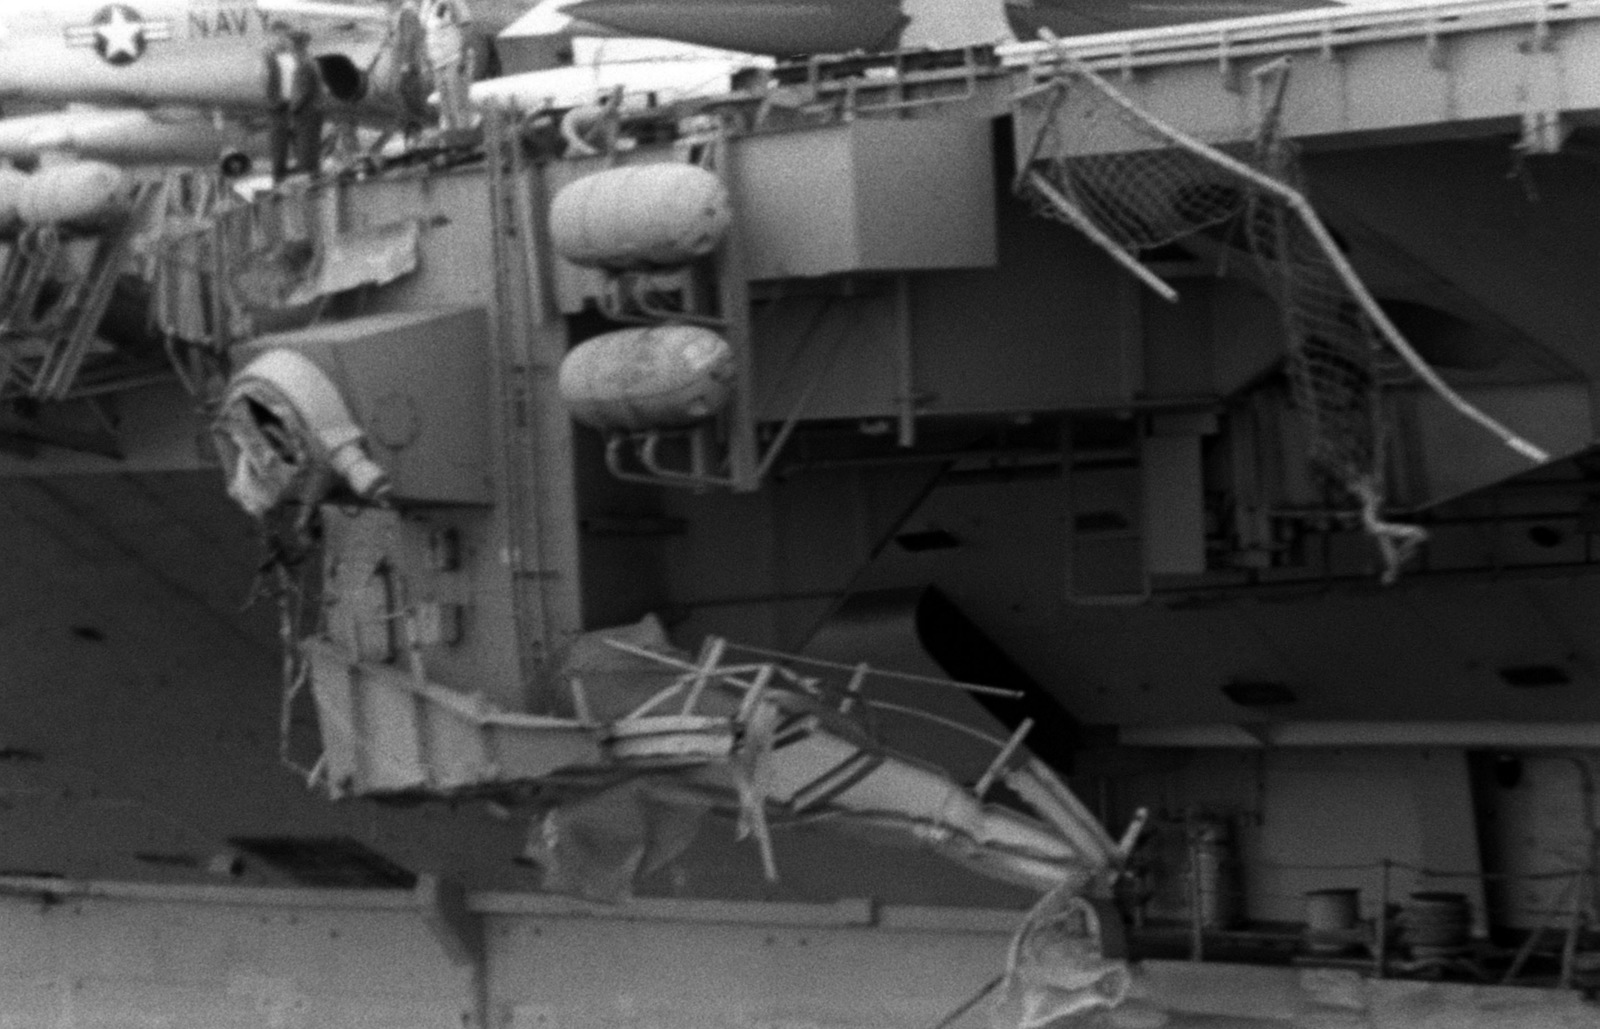 A view of damage caused to the port side of the aircraft carrier USS MIDWAY(CV 41) when it collided with the Panamanian freighter CACTUS